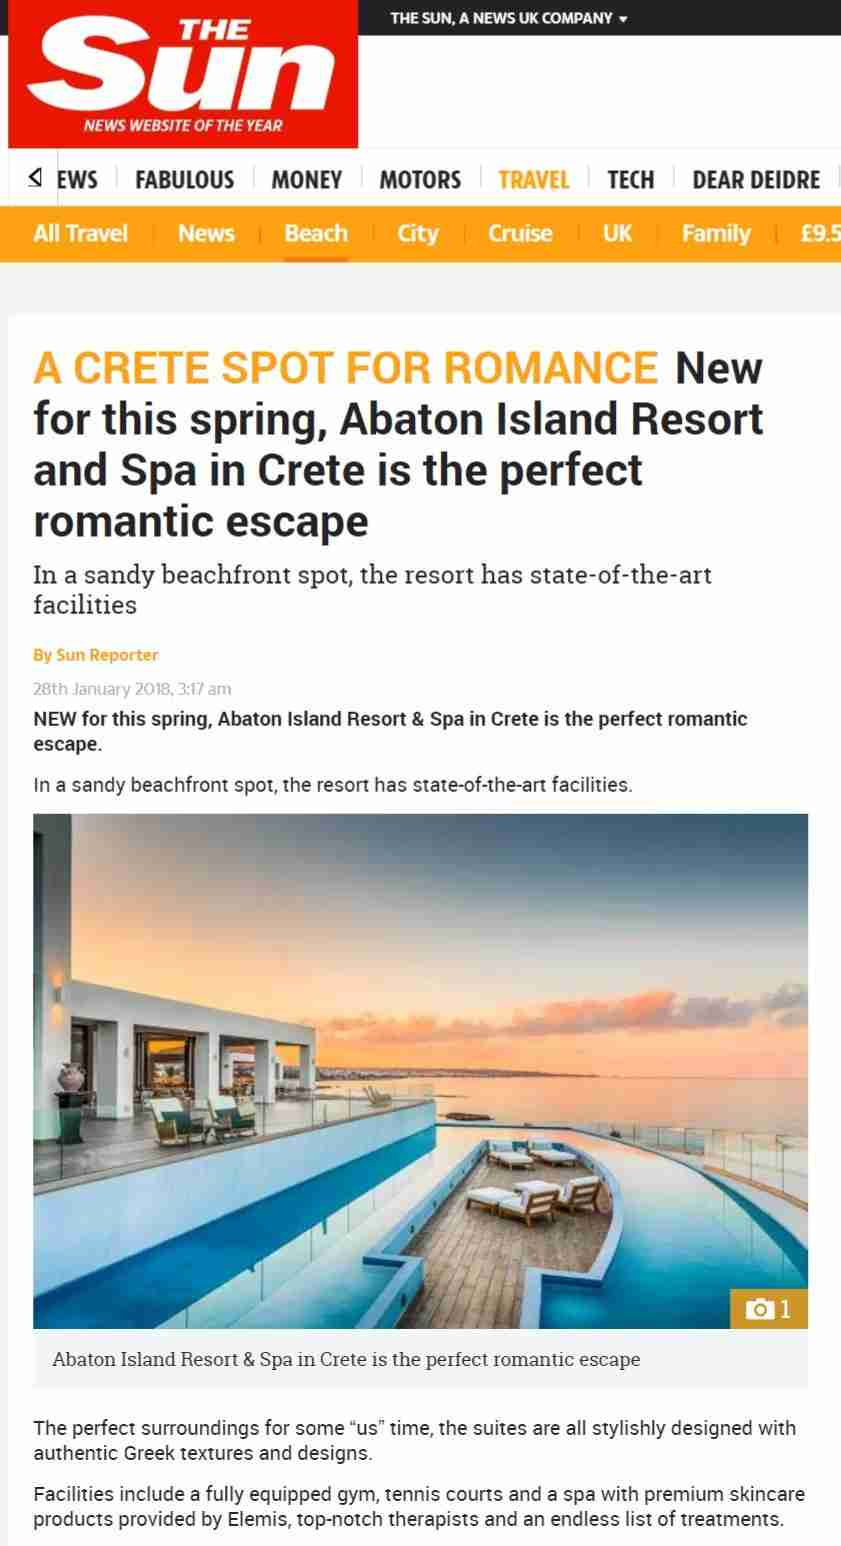 New for this spring, Abaton is the perfect romantic escape